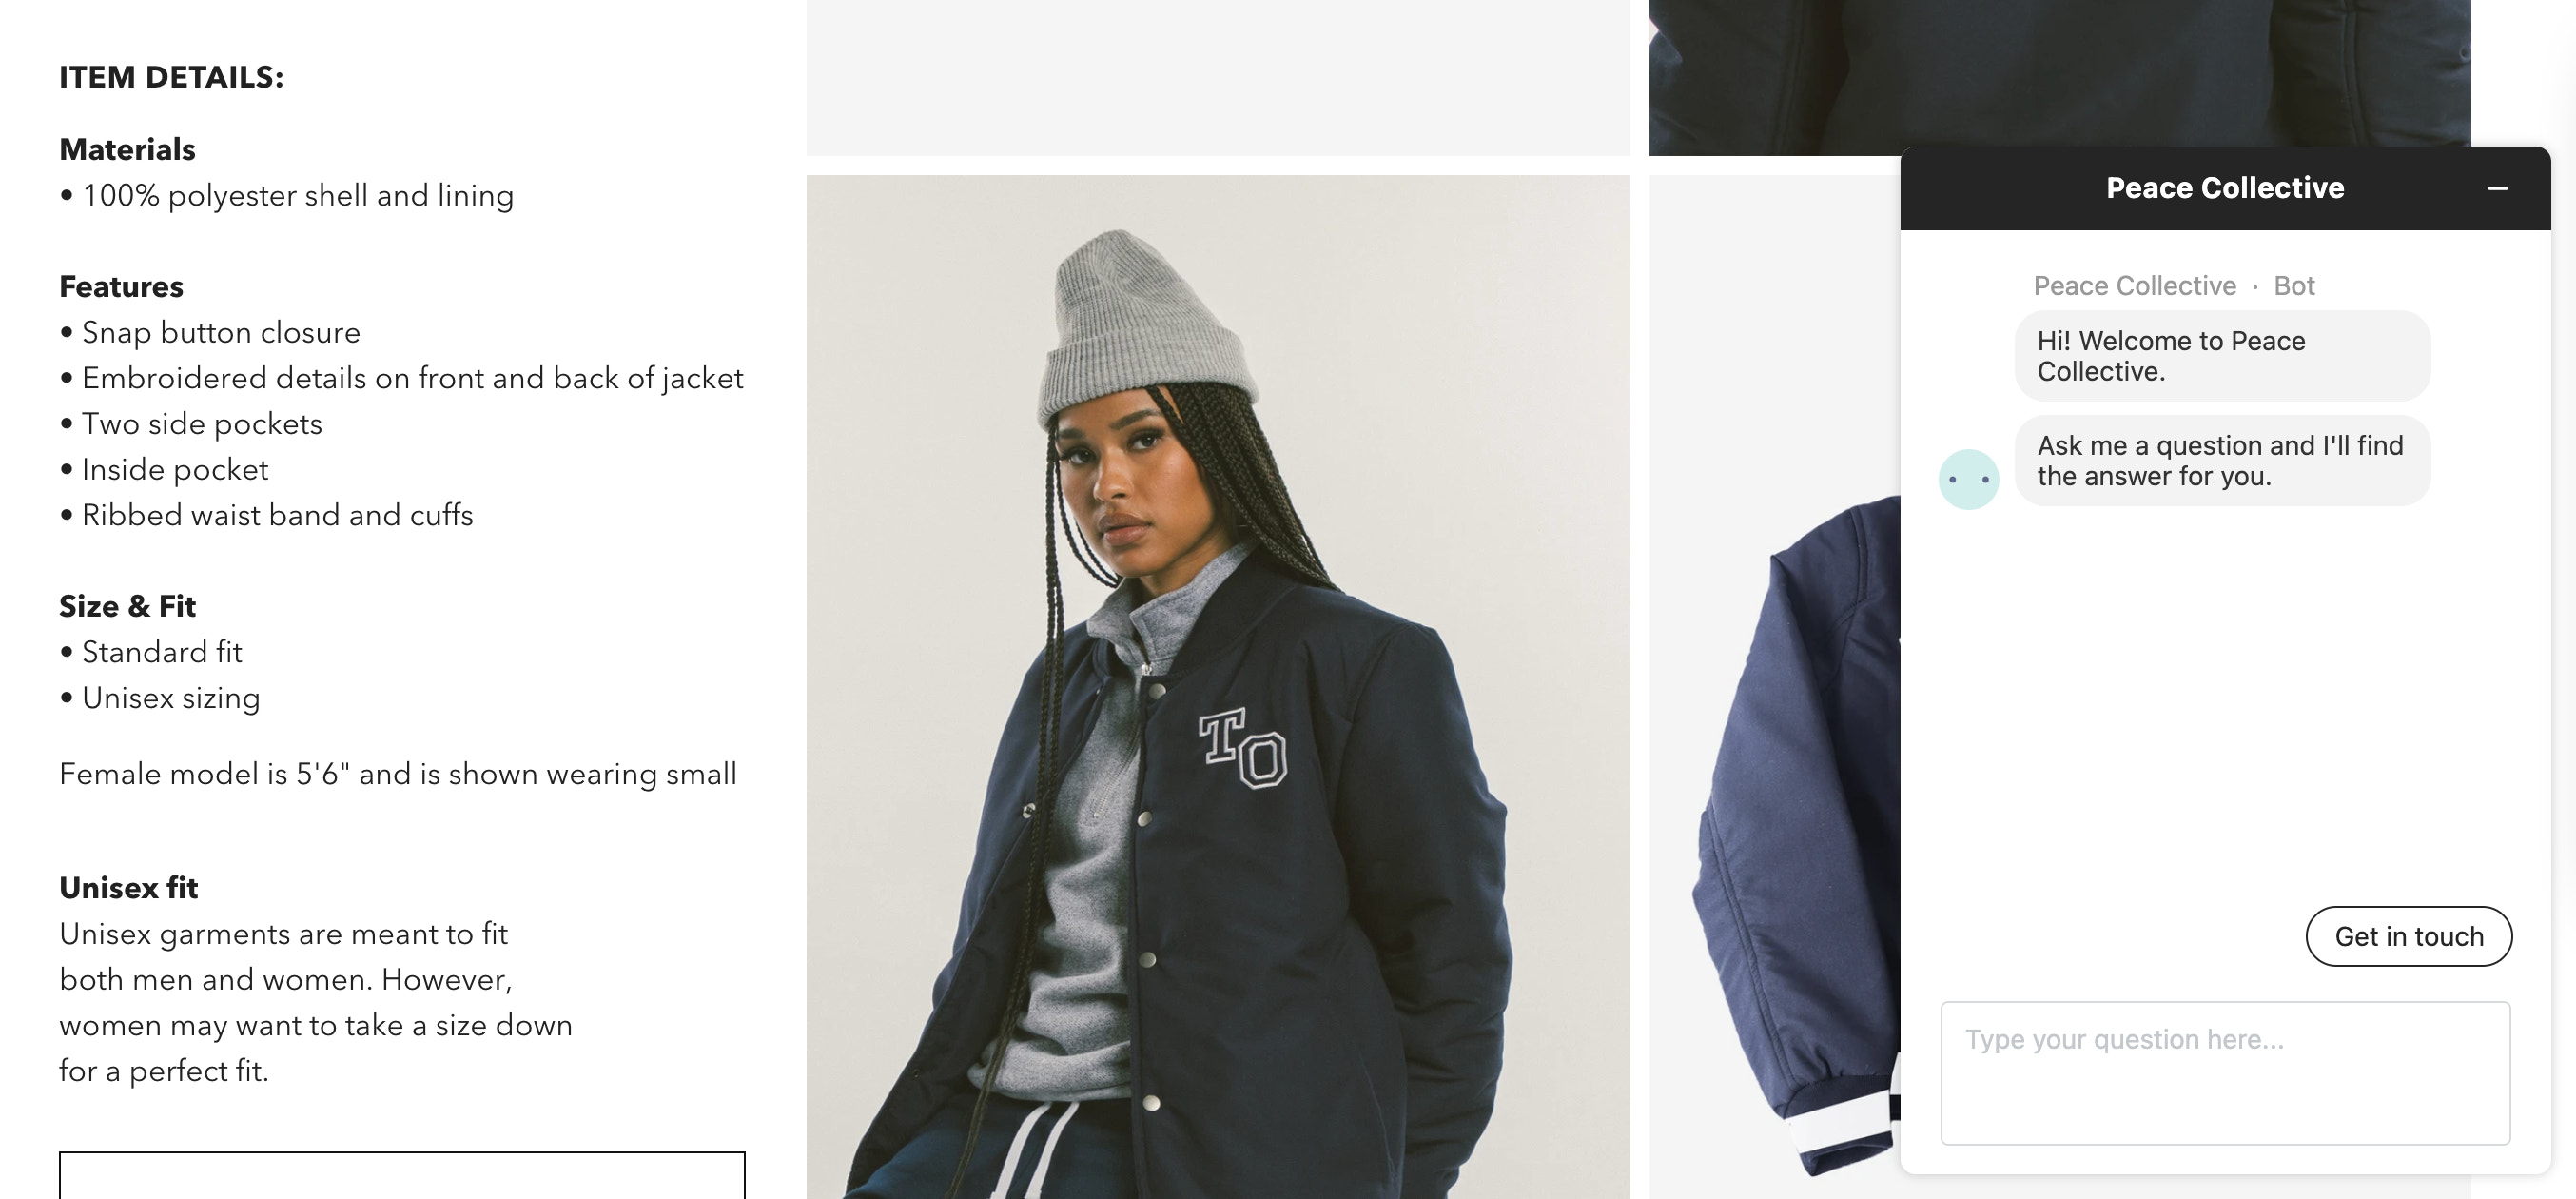 Sizing details listed on a Toronto-themed bomber jacket sold by Peace Collective